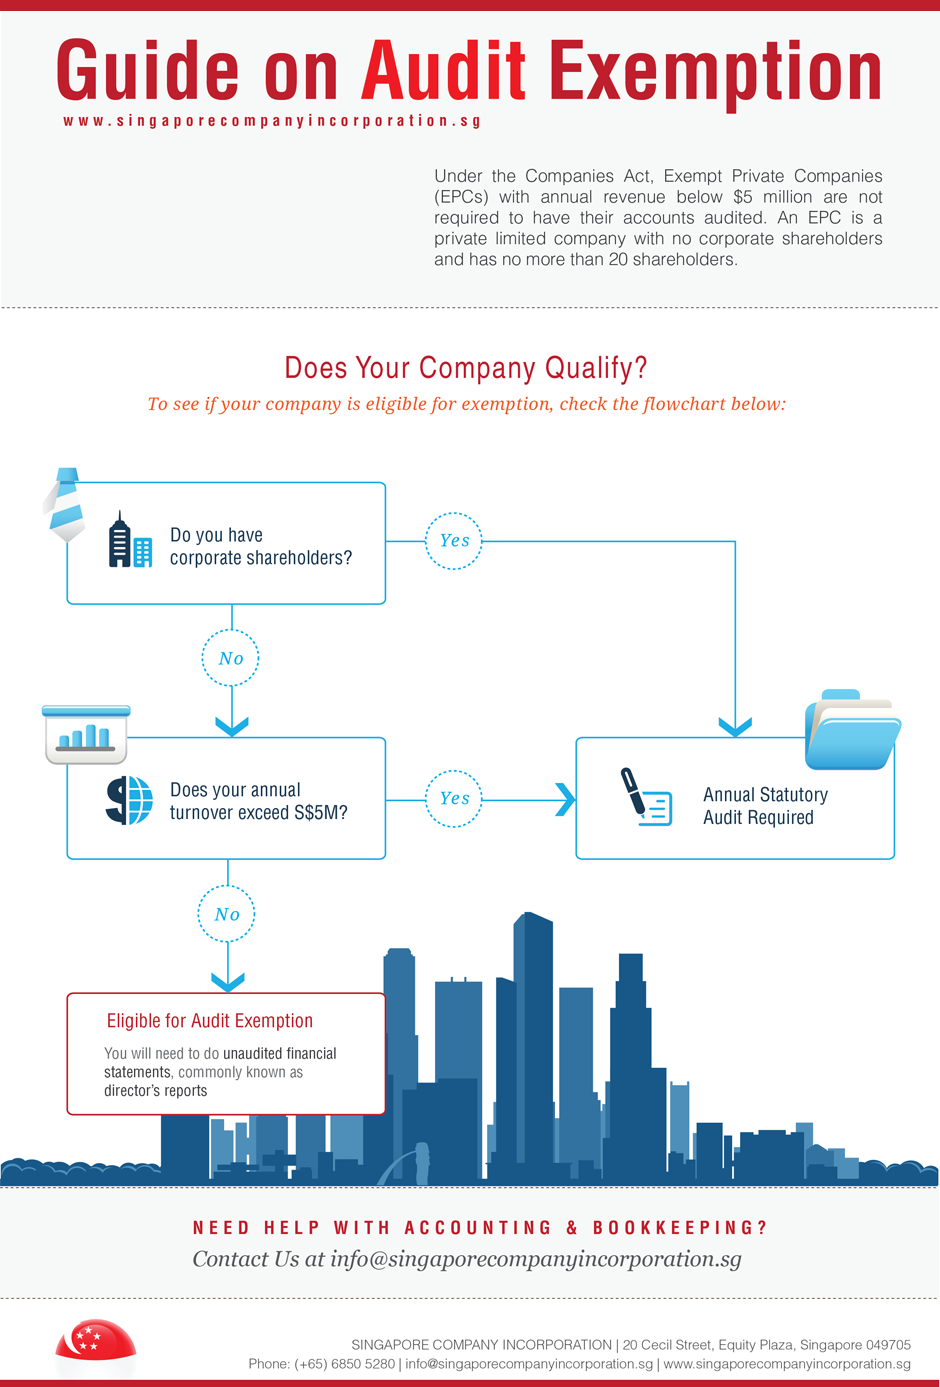 Singapore audit exemption infographic for Exempt Private Companies and Dormant Companies